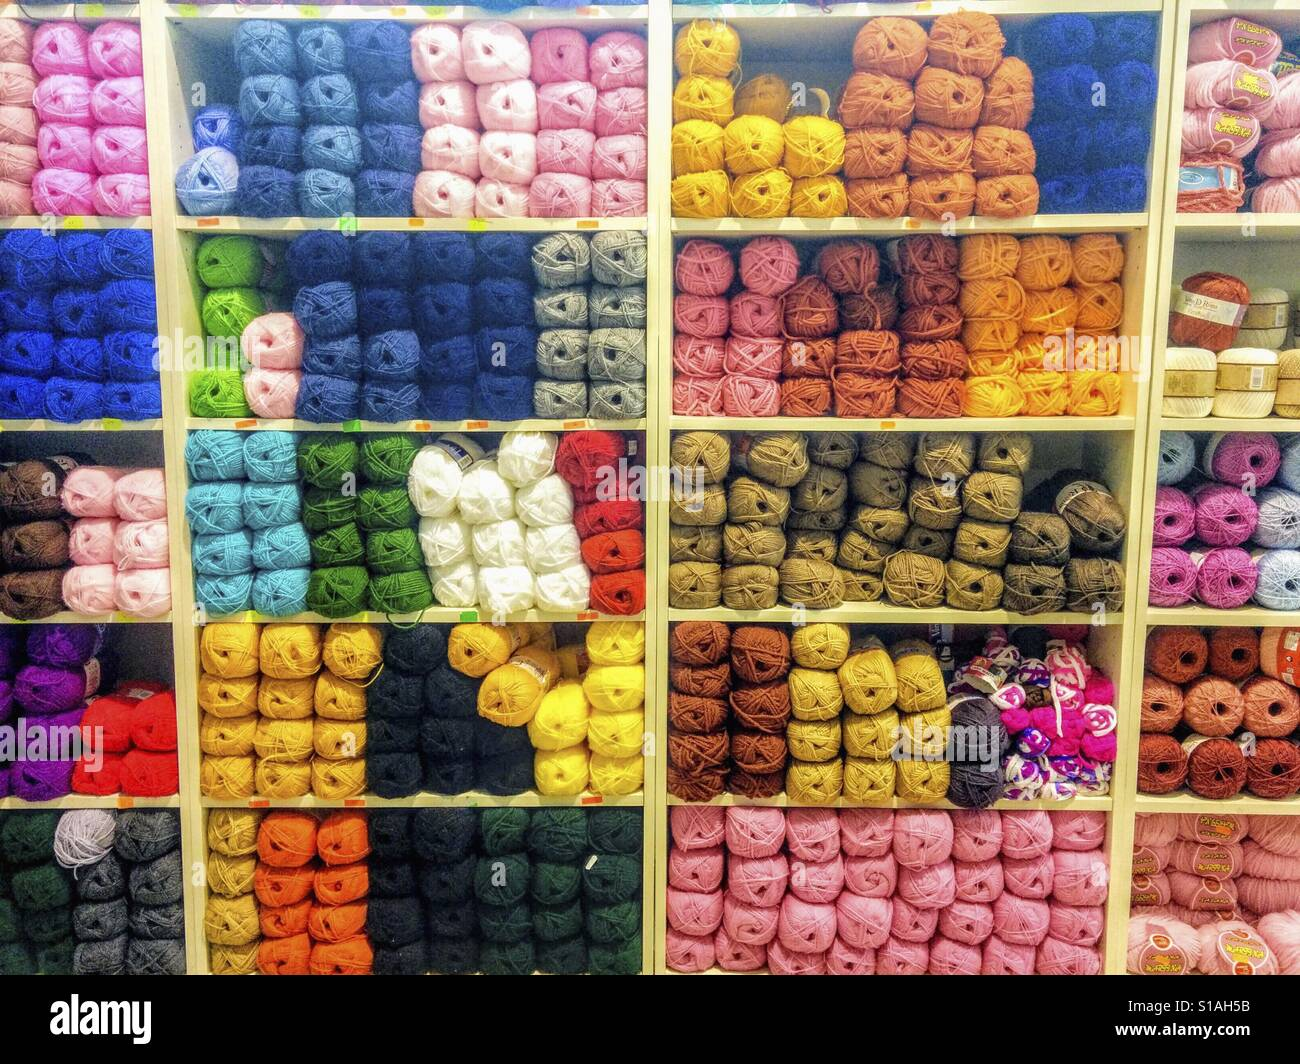 Skeins of wool for sale. - Stock Image